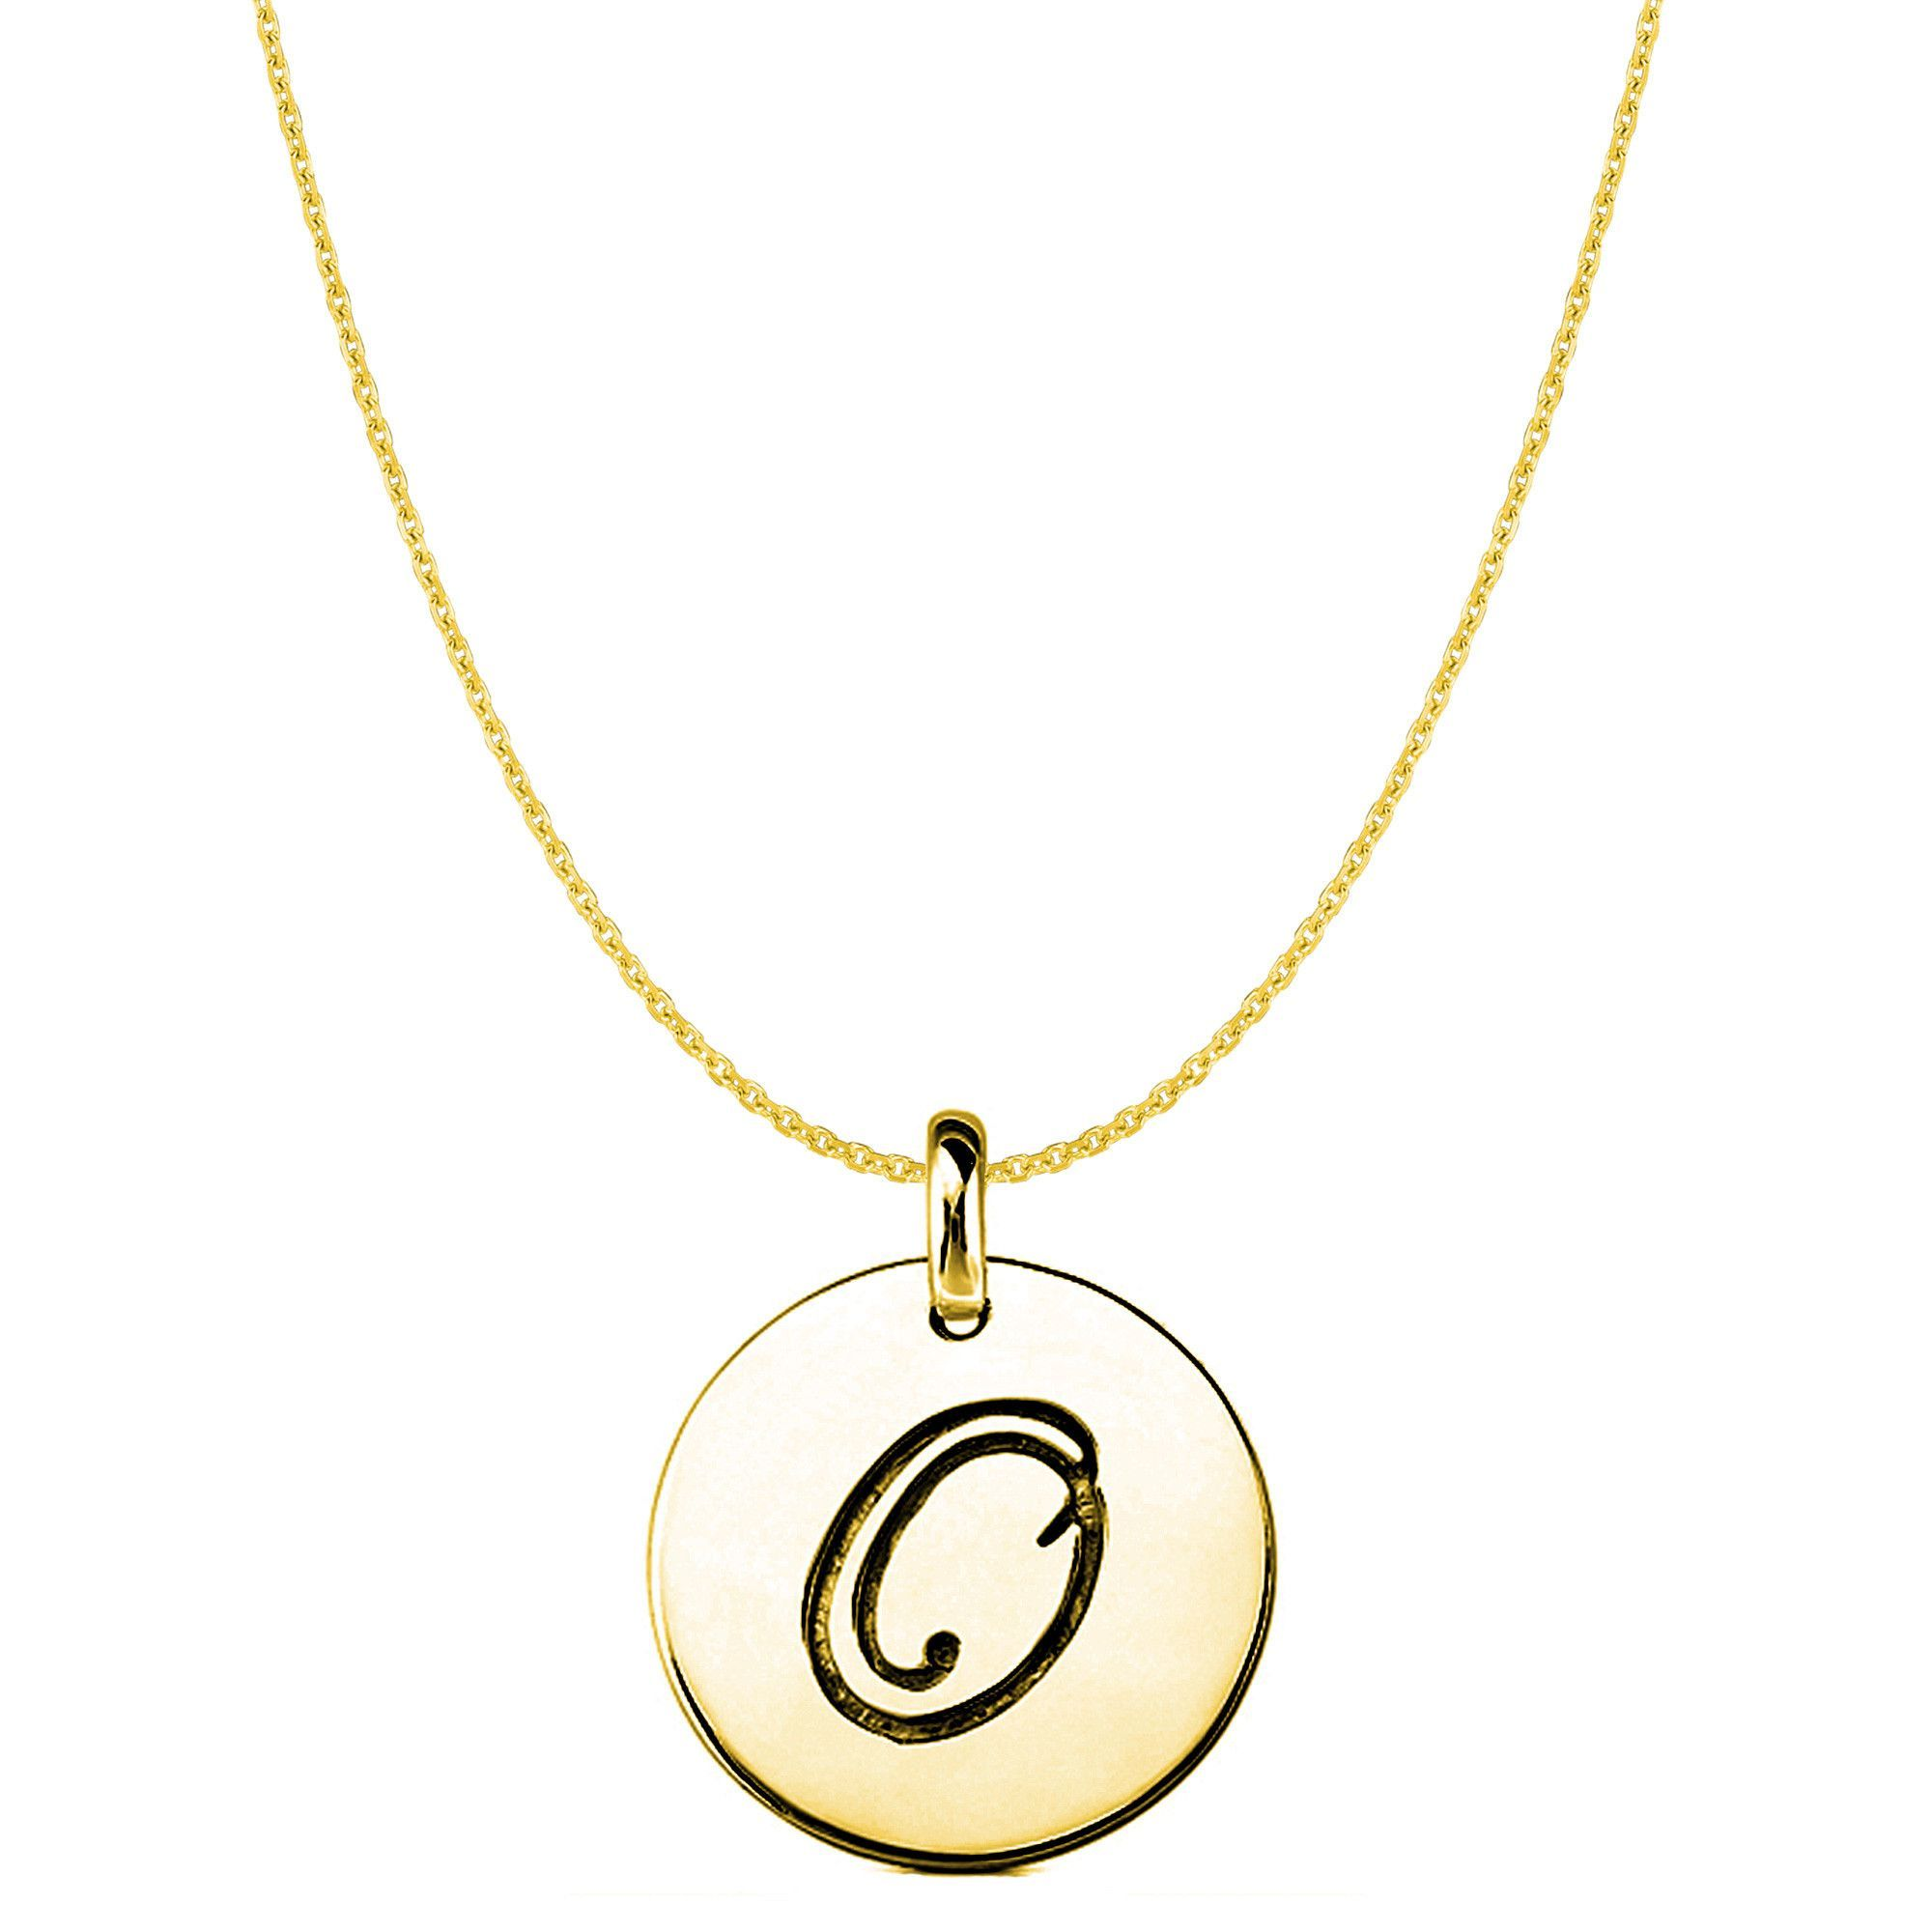 jewellery wesbourne necklace disc resize westbourne white auree disk gold